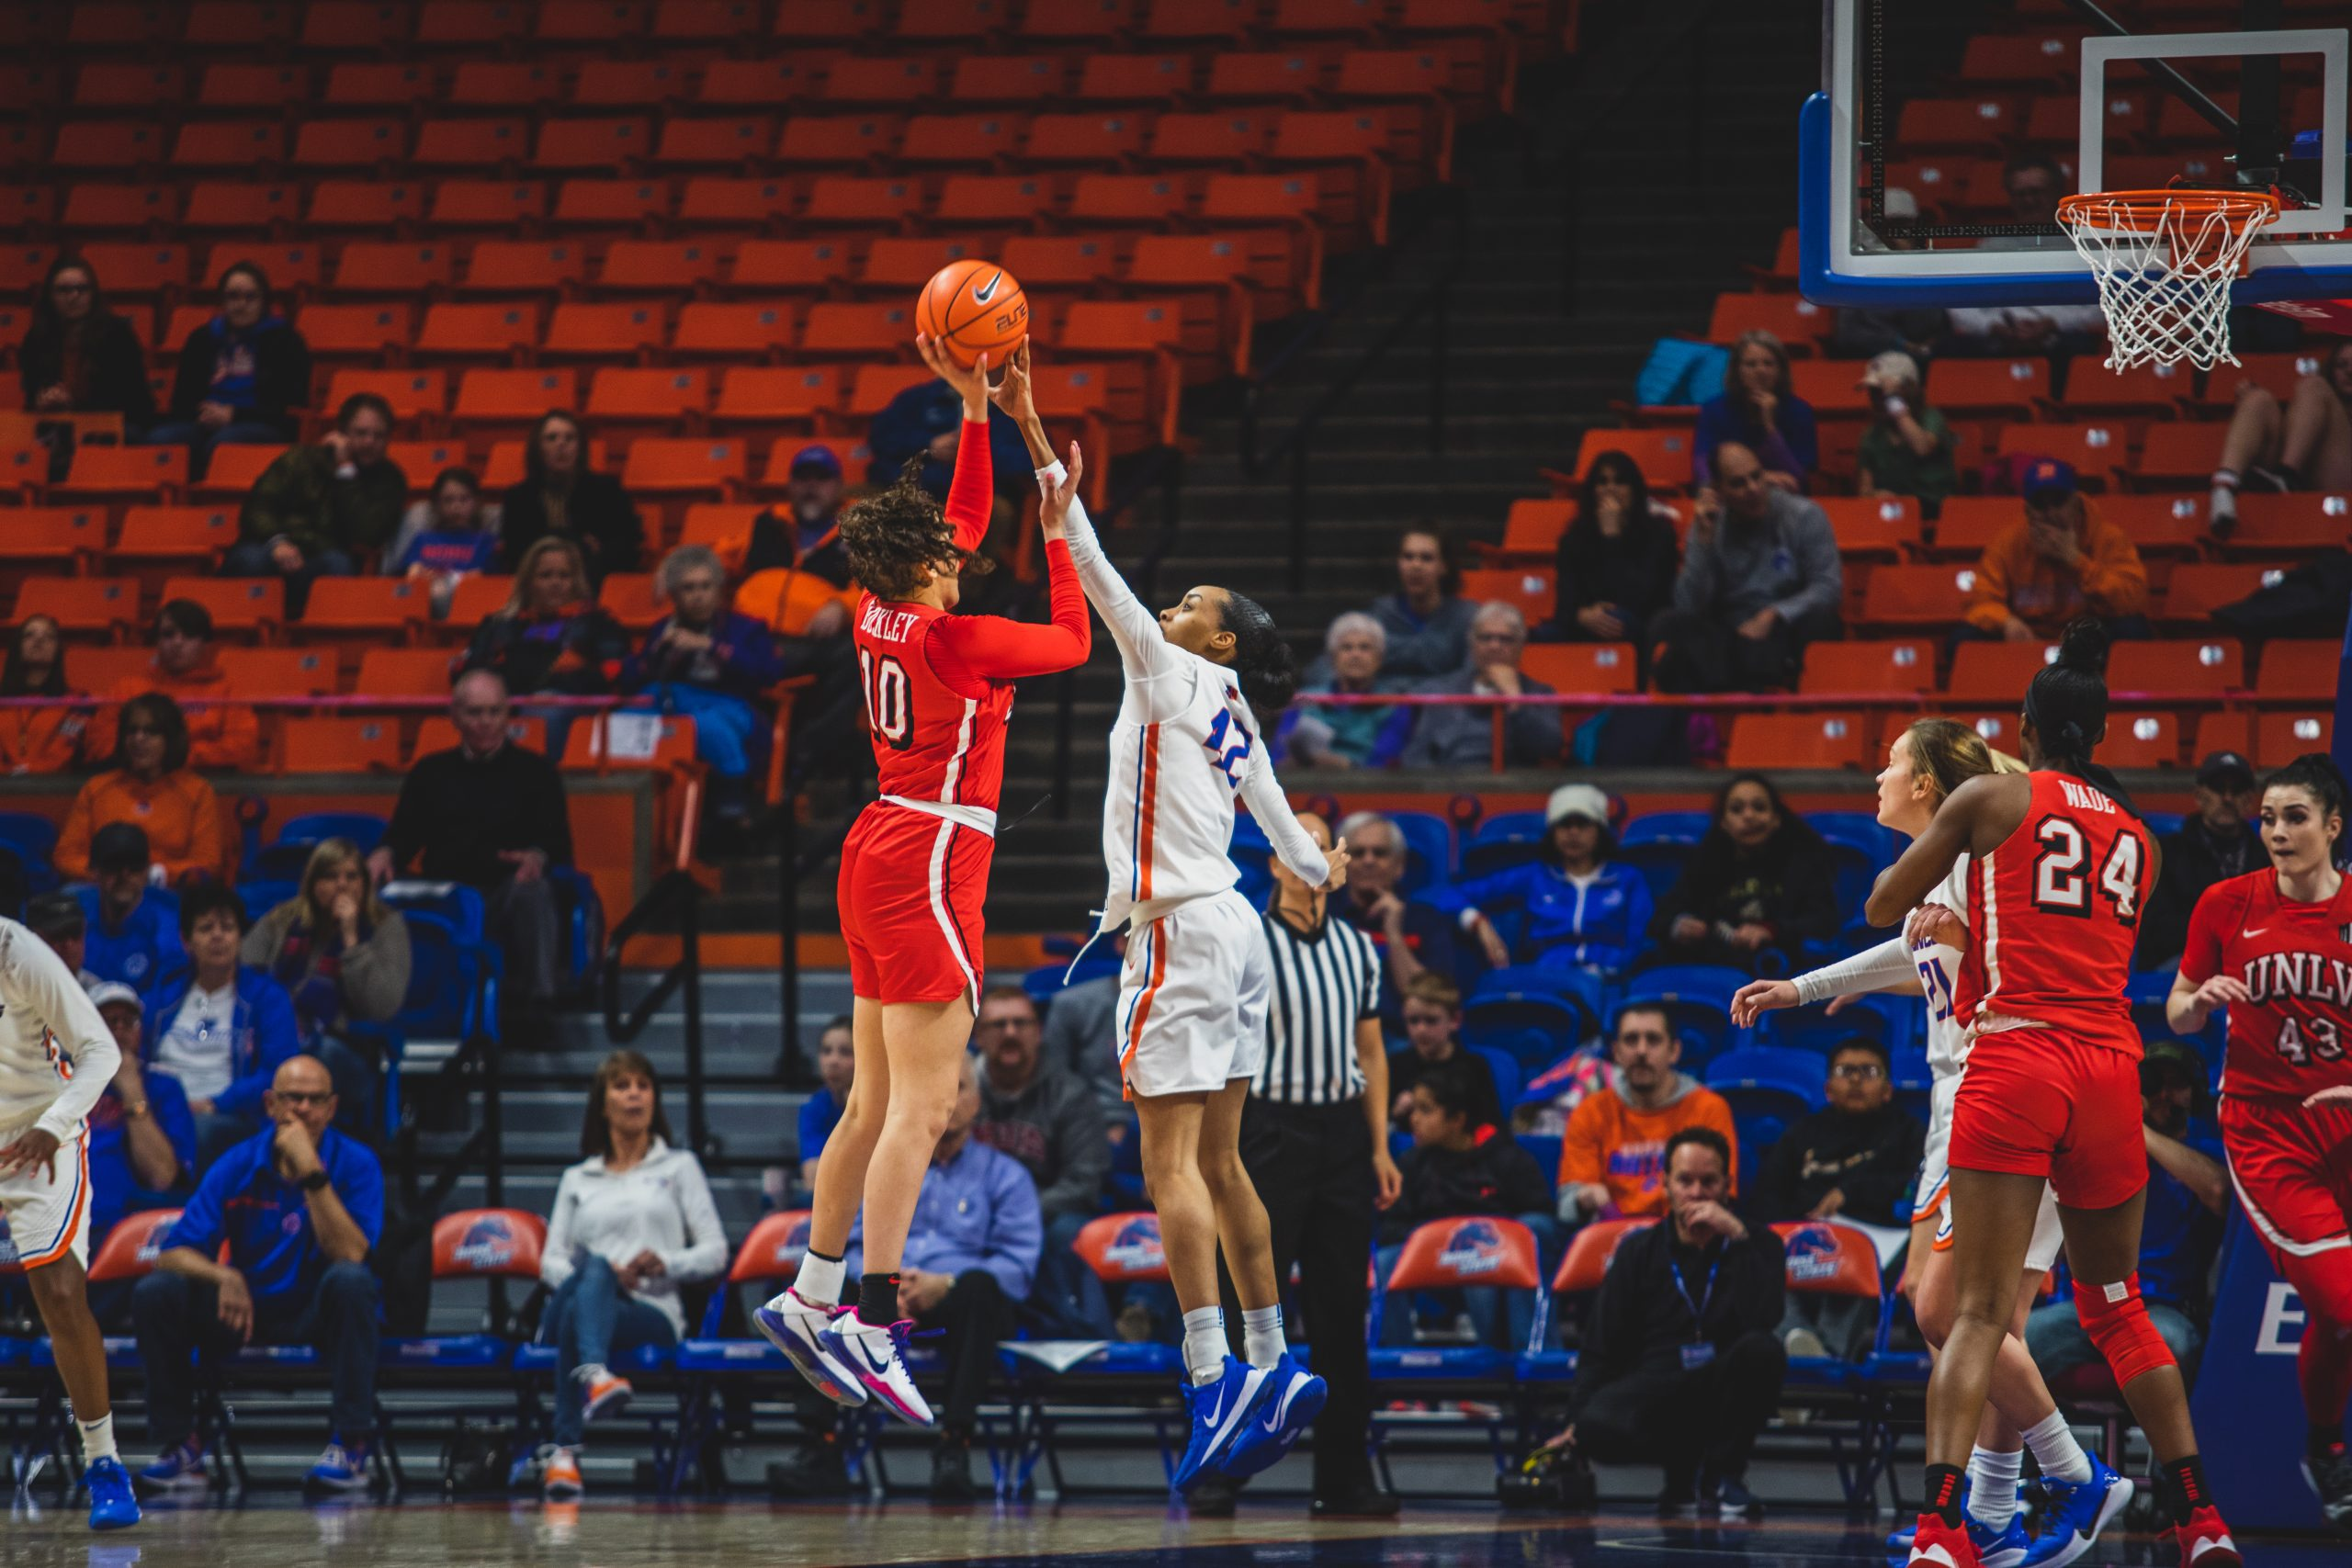 Mountain West Conference Women's Basketball Championship 2020